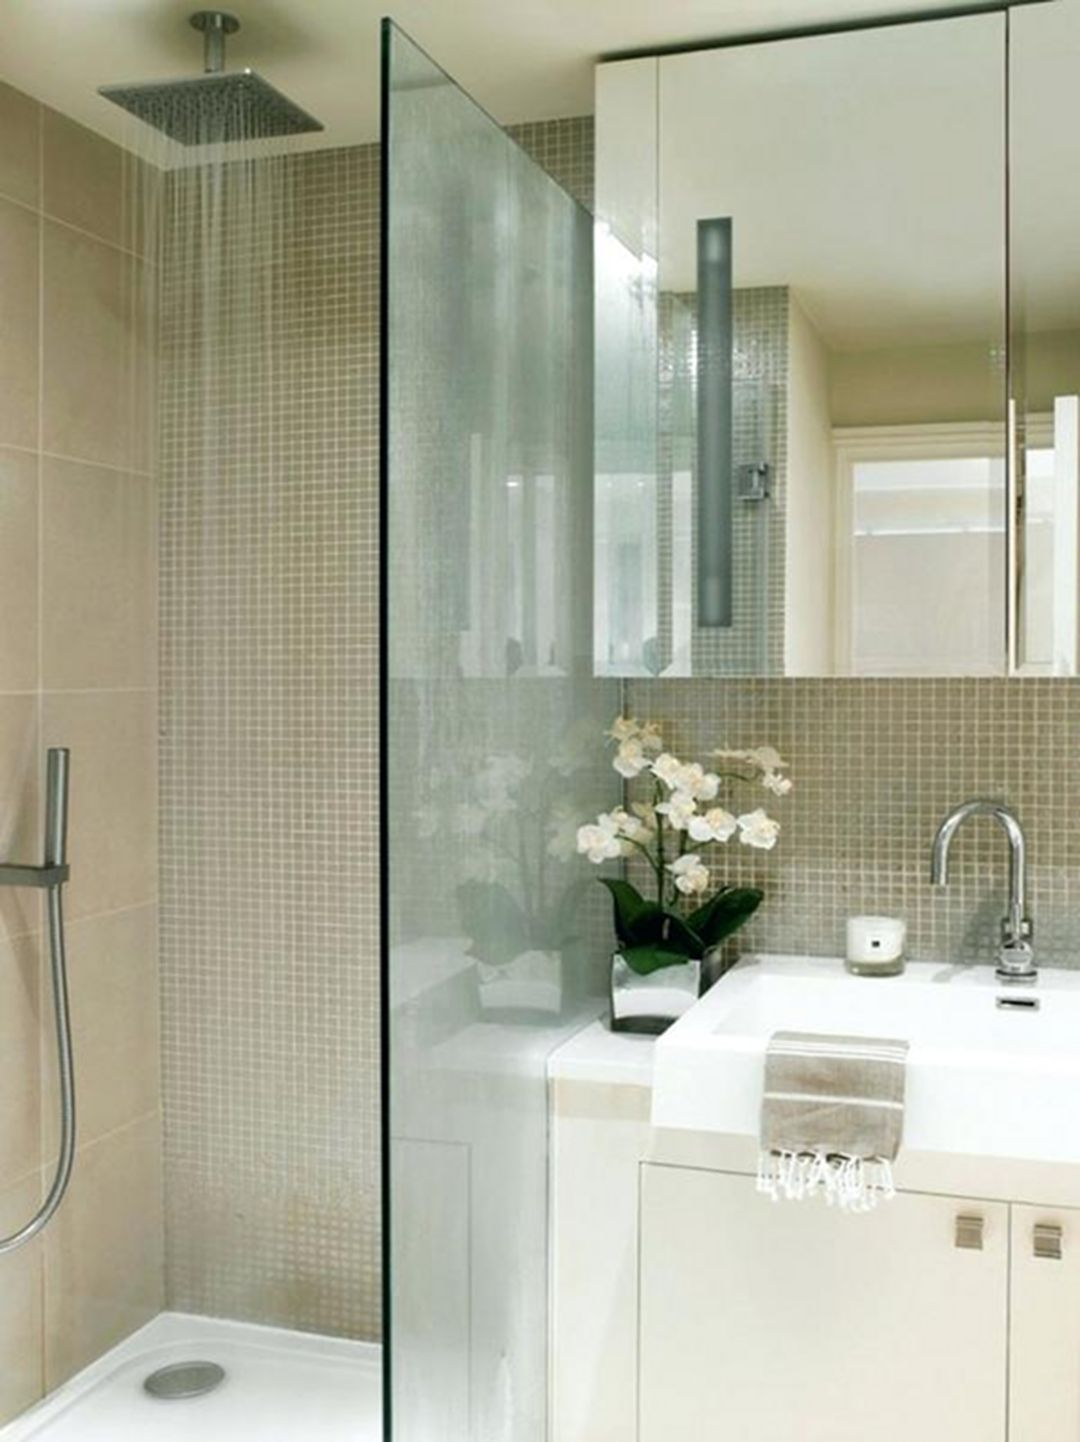 21 Most Awesome Small Glass Shower Design Ideas For Advanced